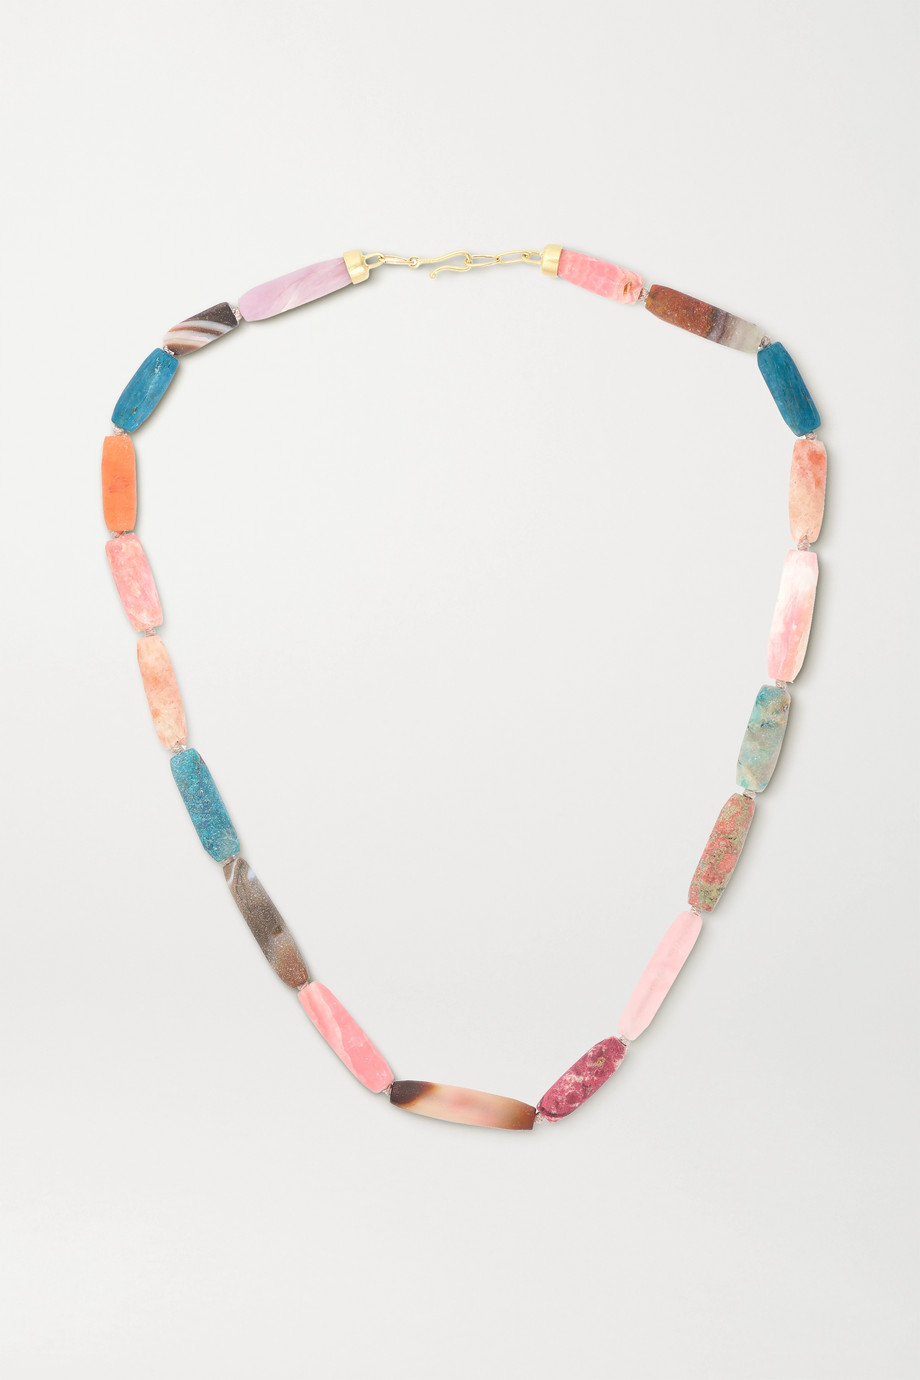 Brooke Gregson 18-karat gold multi-stone necklace